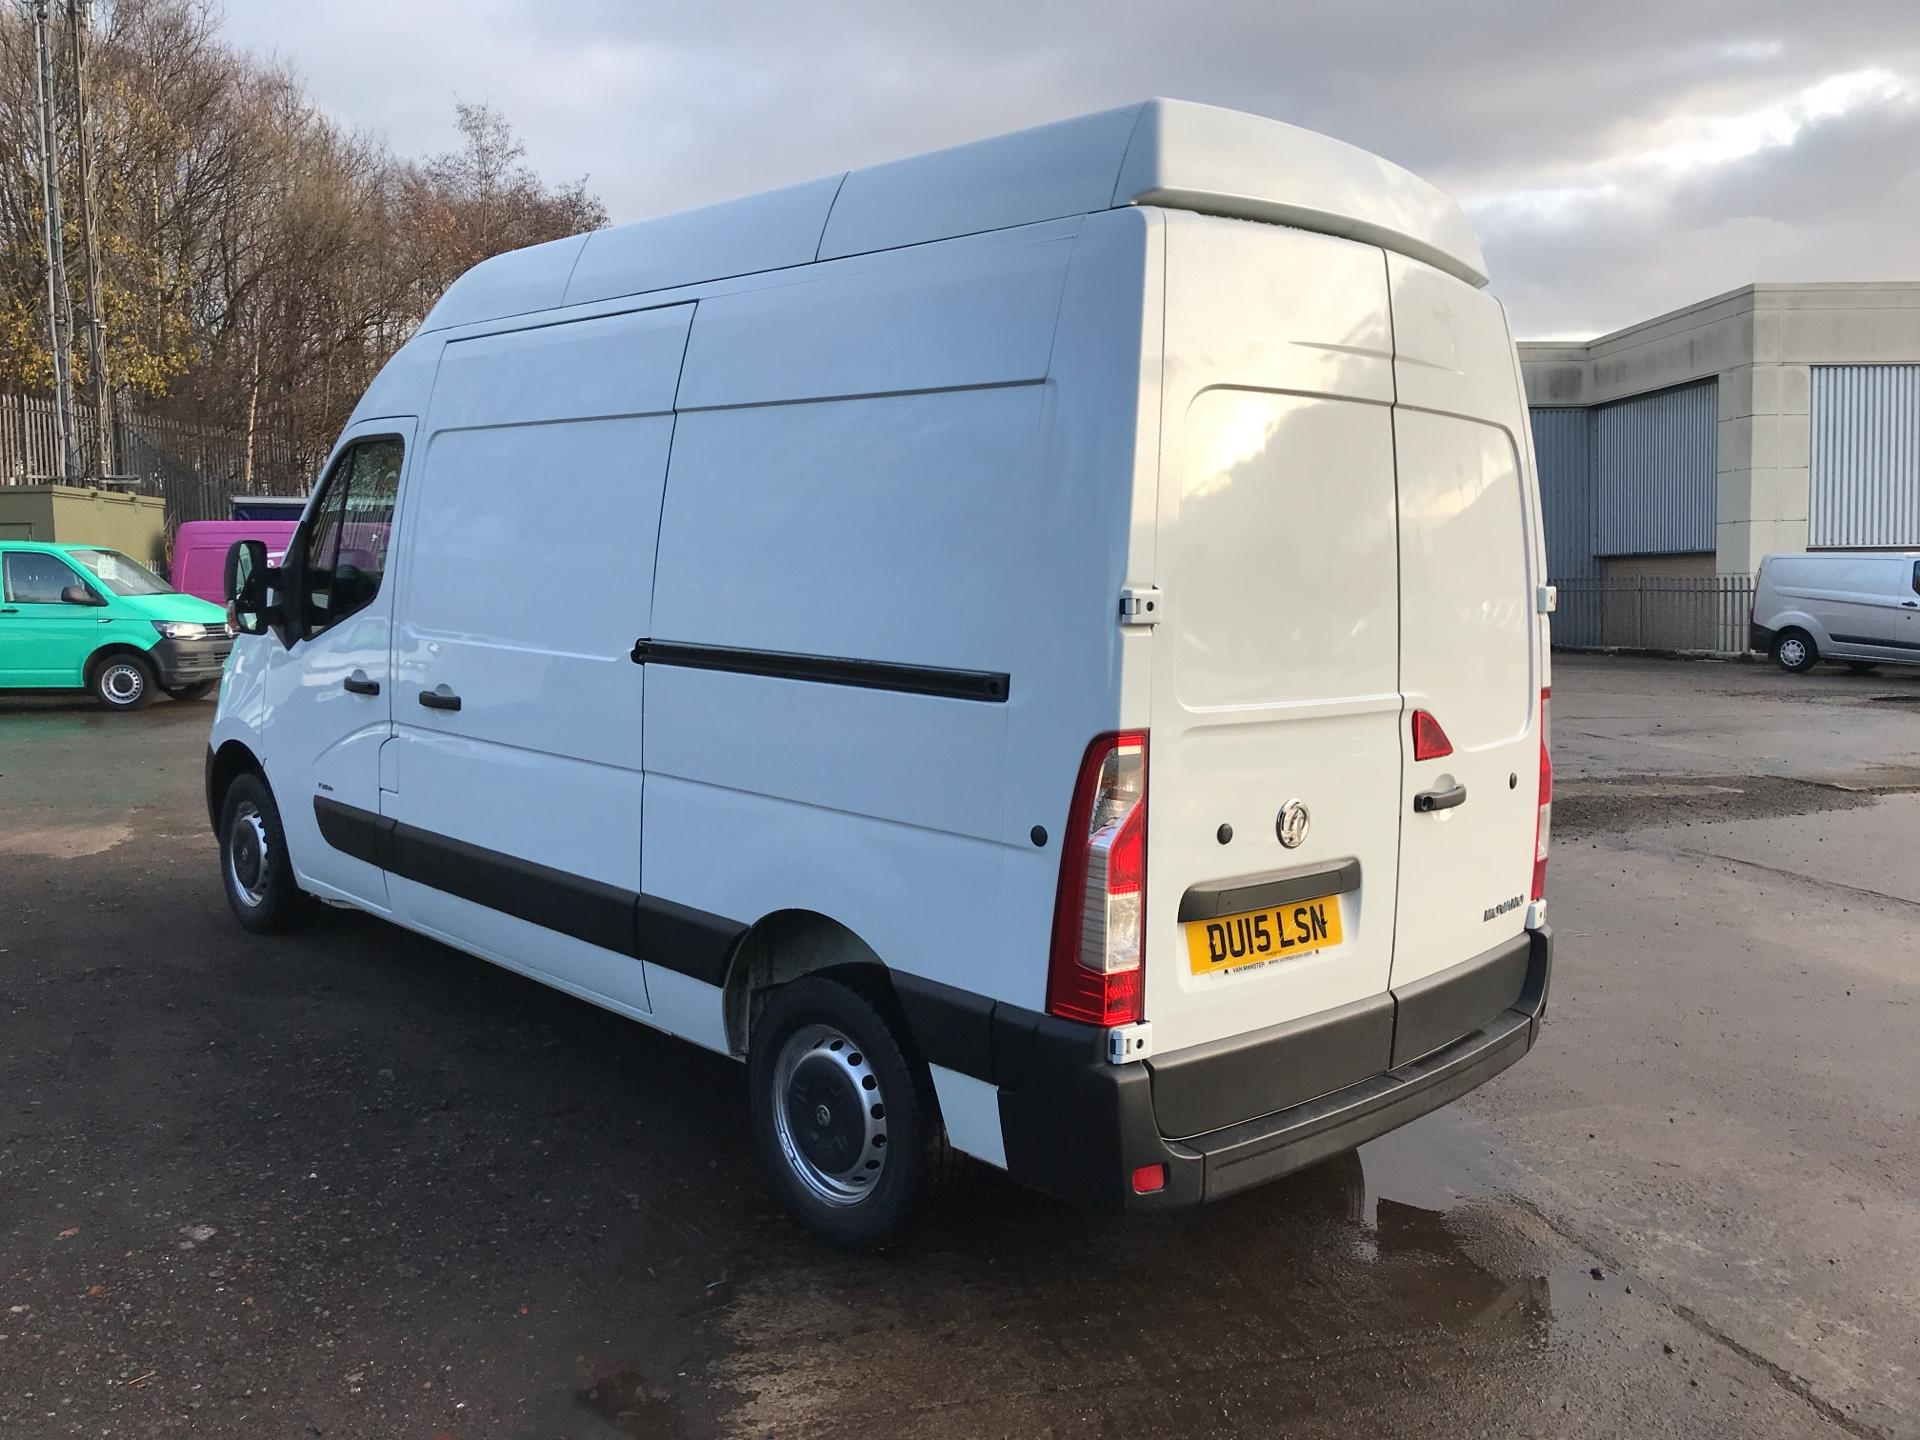 2015 Vauxhall Movano 35 L2 H3 2.3 TDCI 125PS EURO 5 (DU15LSN) Image 5